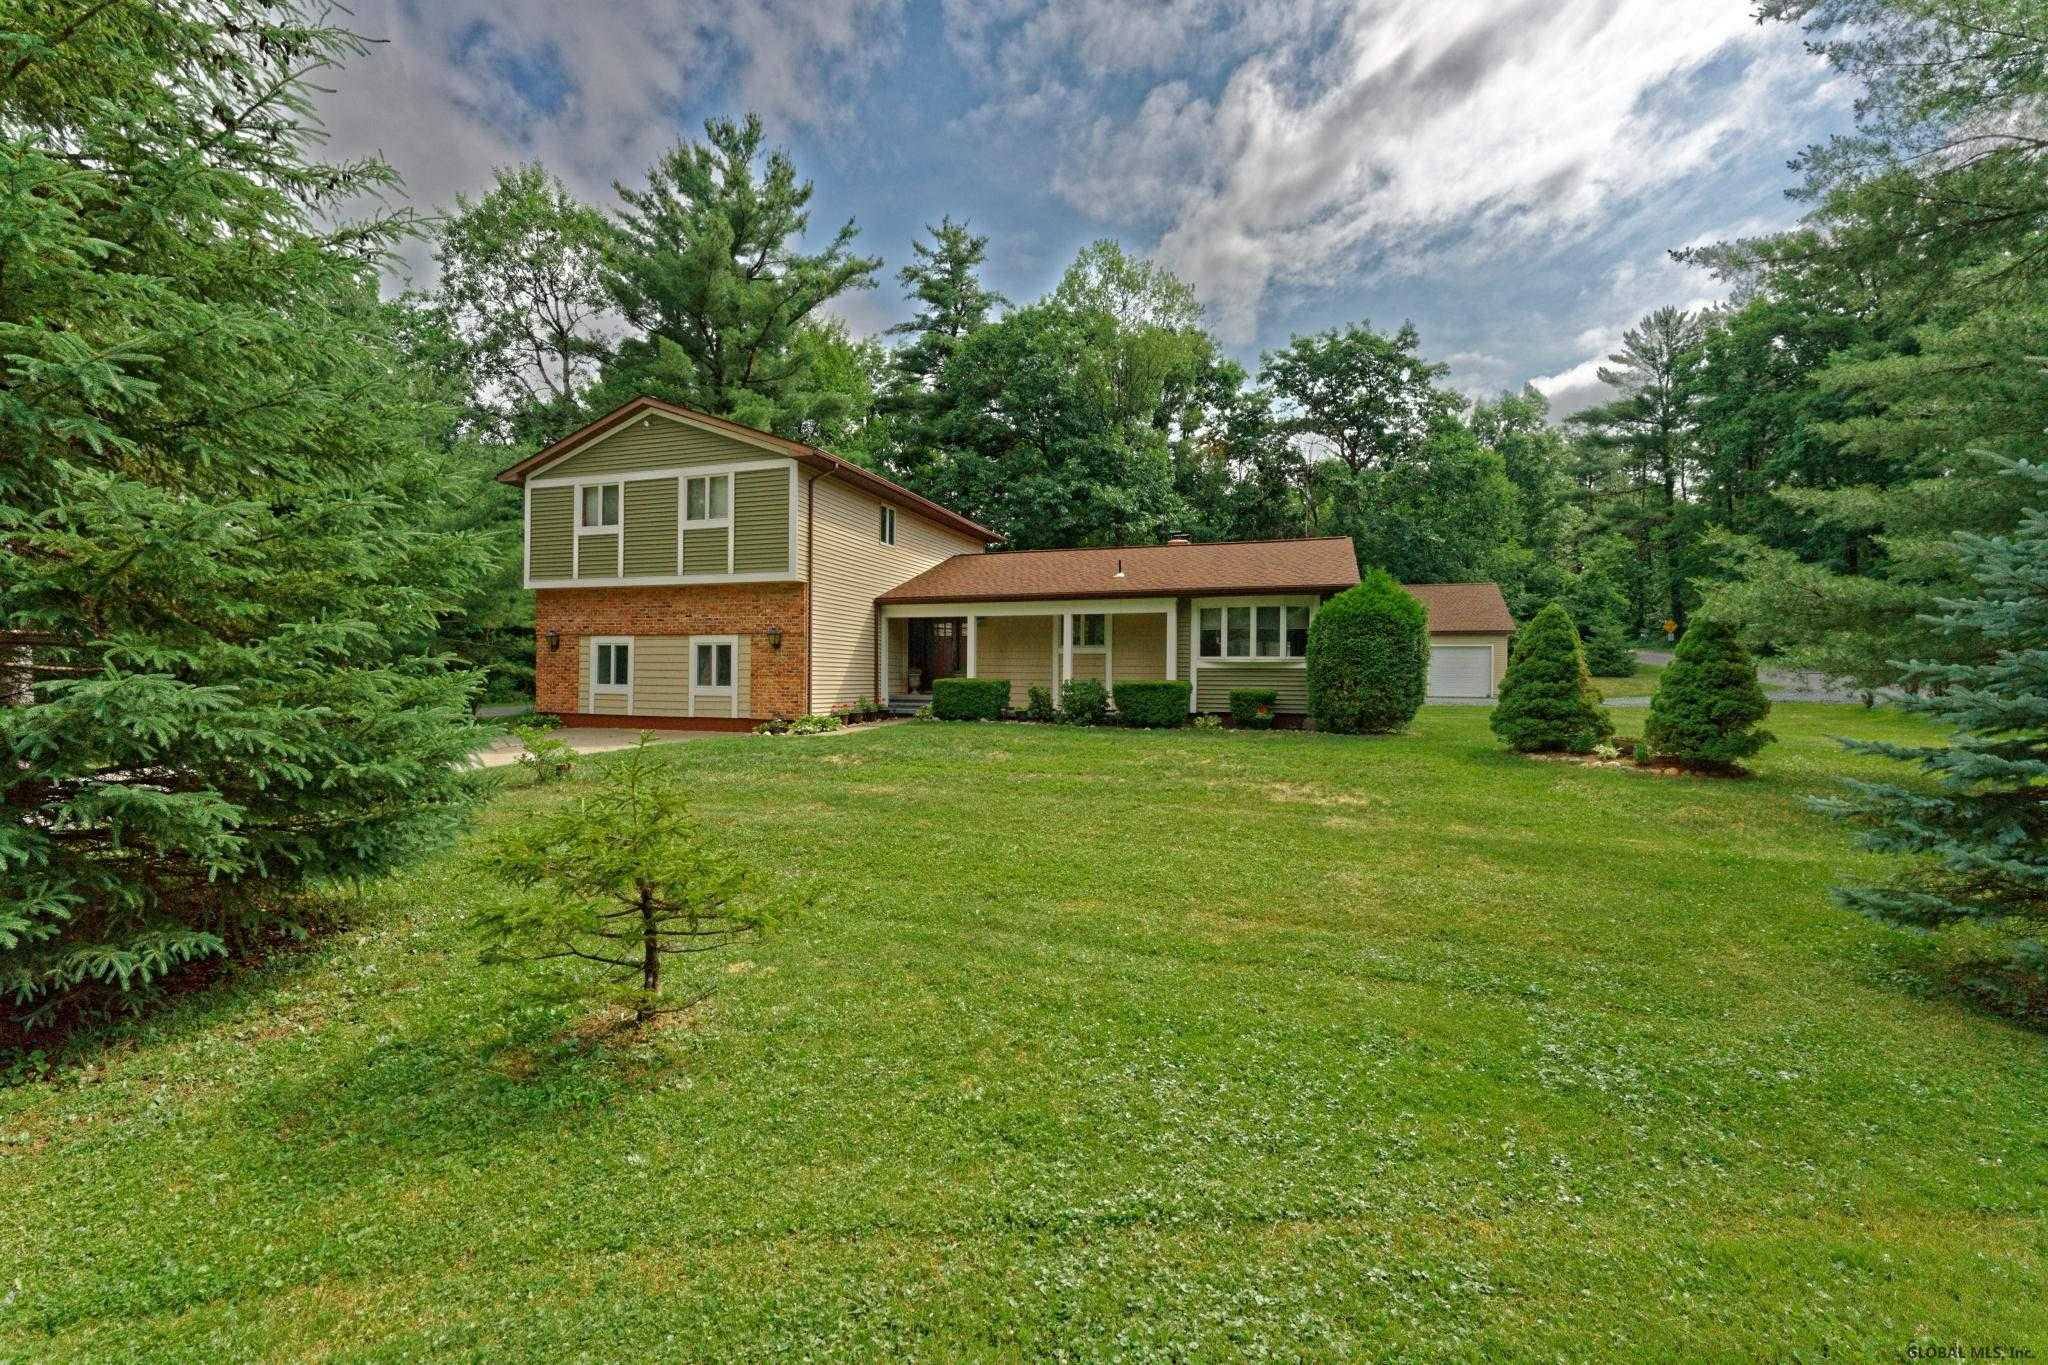 $299,800 - 4Br/3Ba -  for Sale in Poestenkill